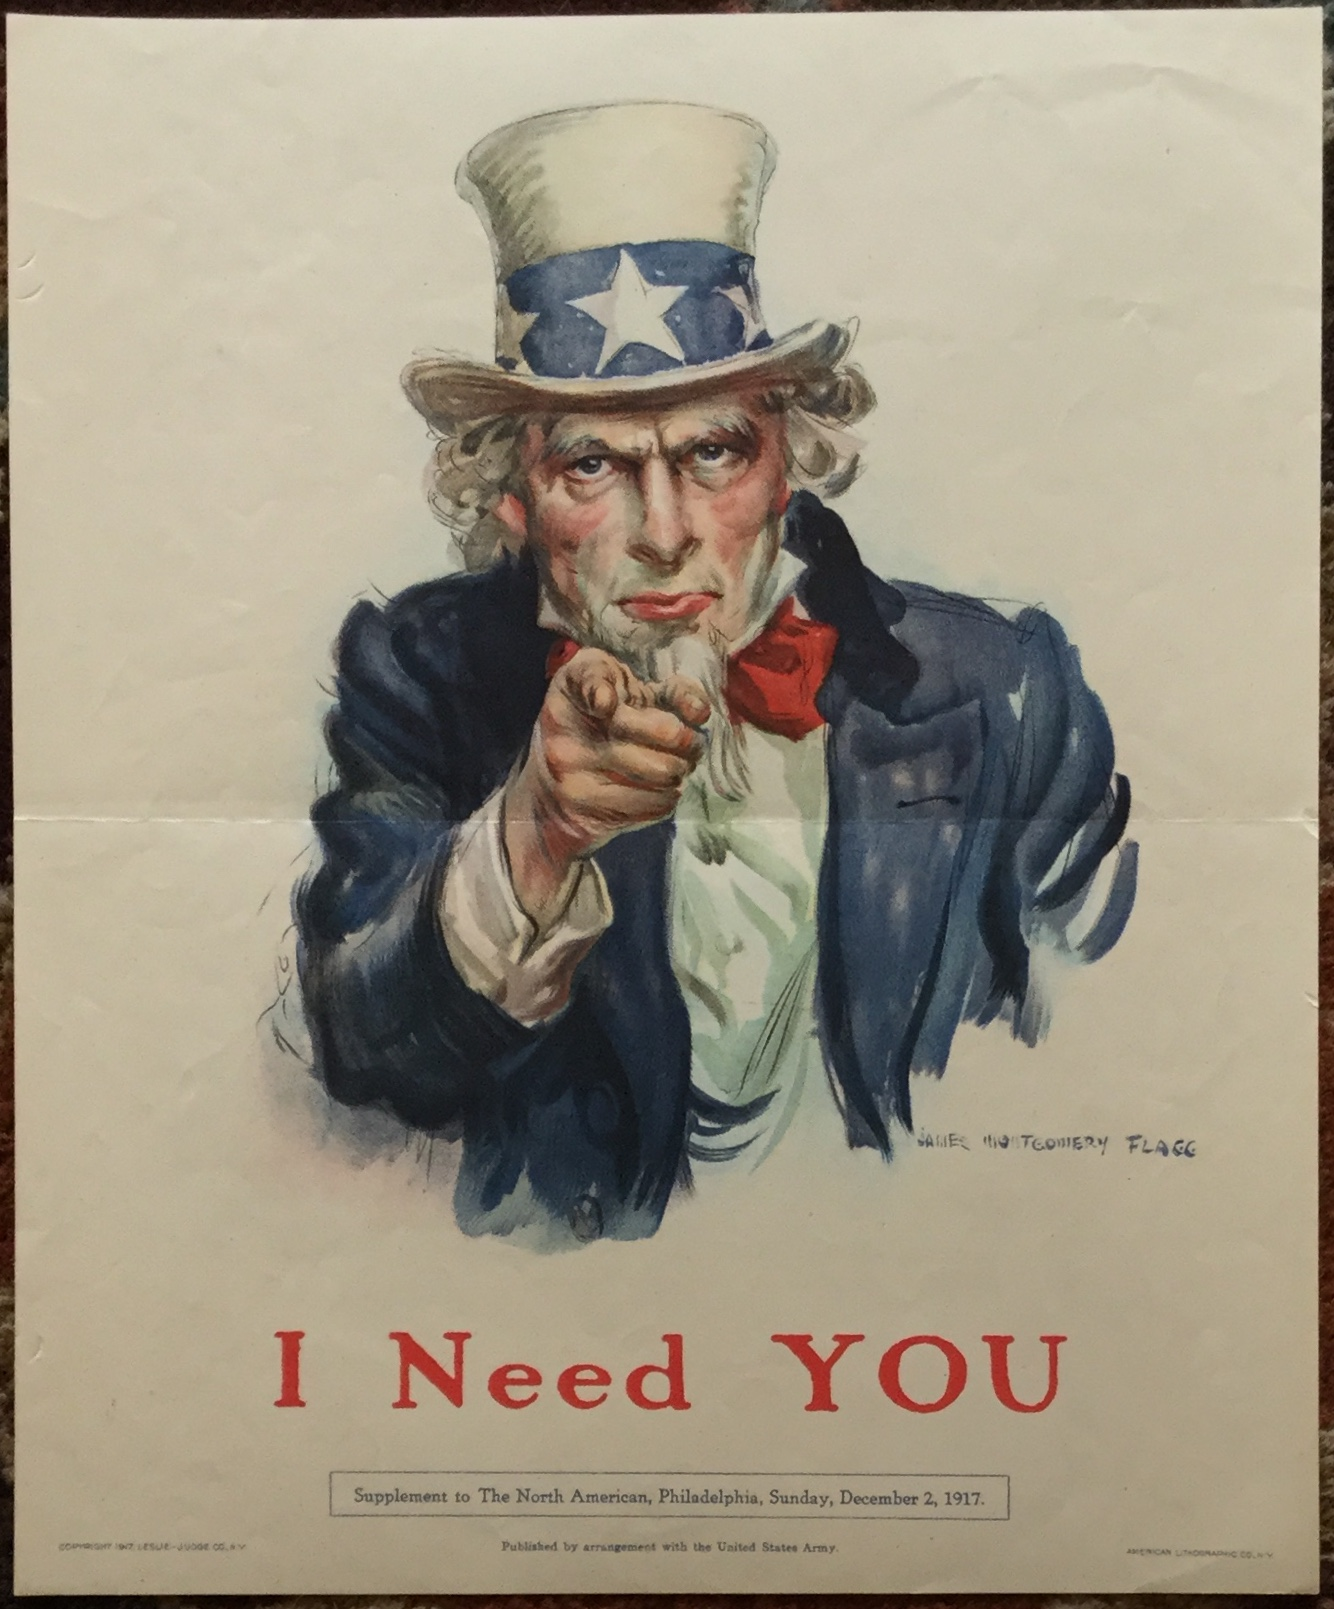 J547I NEED YOU - POSTER SUPPLEMENT TO THE NORTH AMERICAN, PHILADELPHIA, SUNDAY, DECEMBER 2, 1917